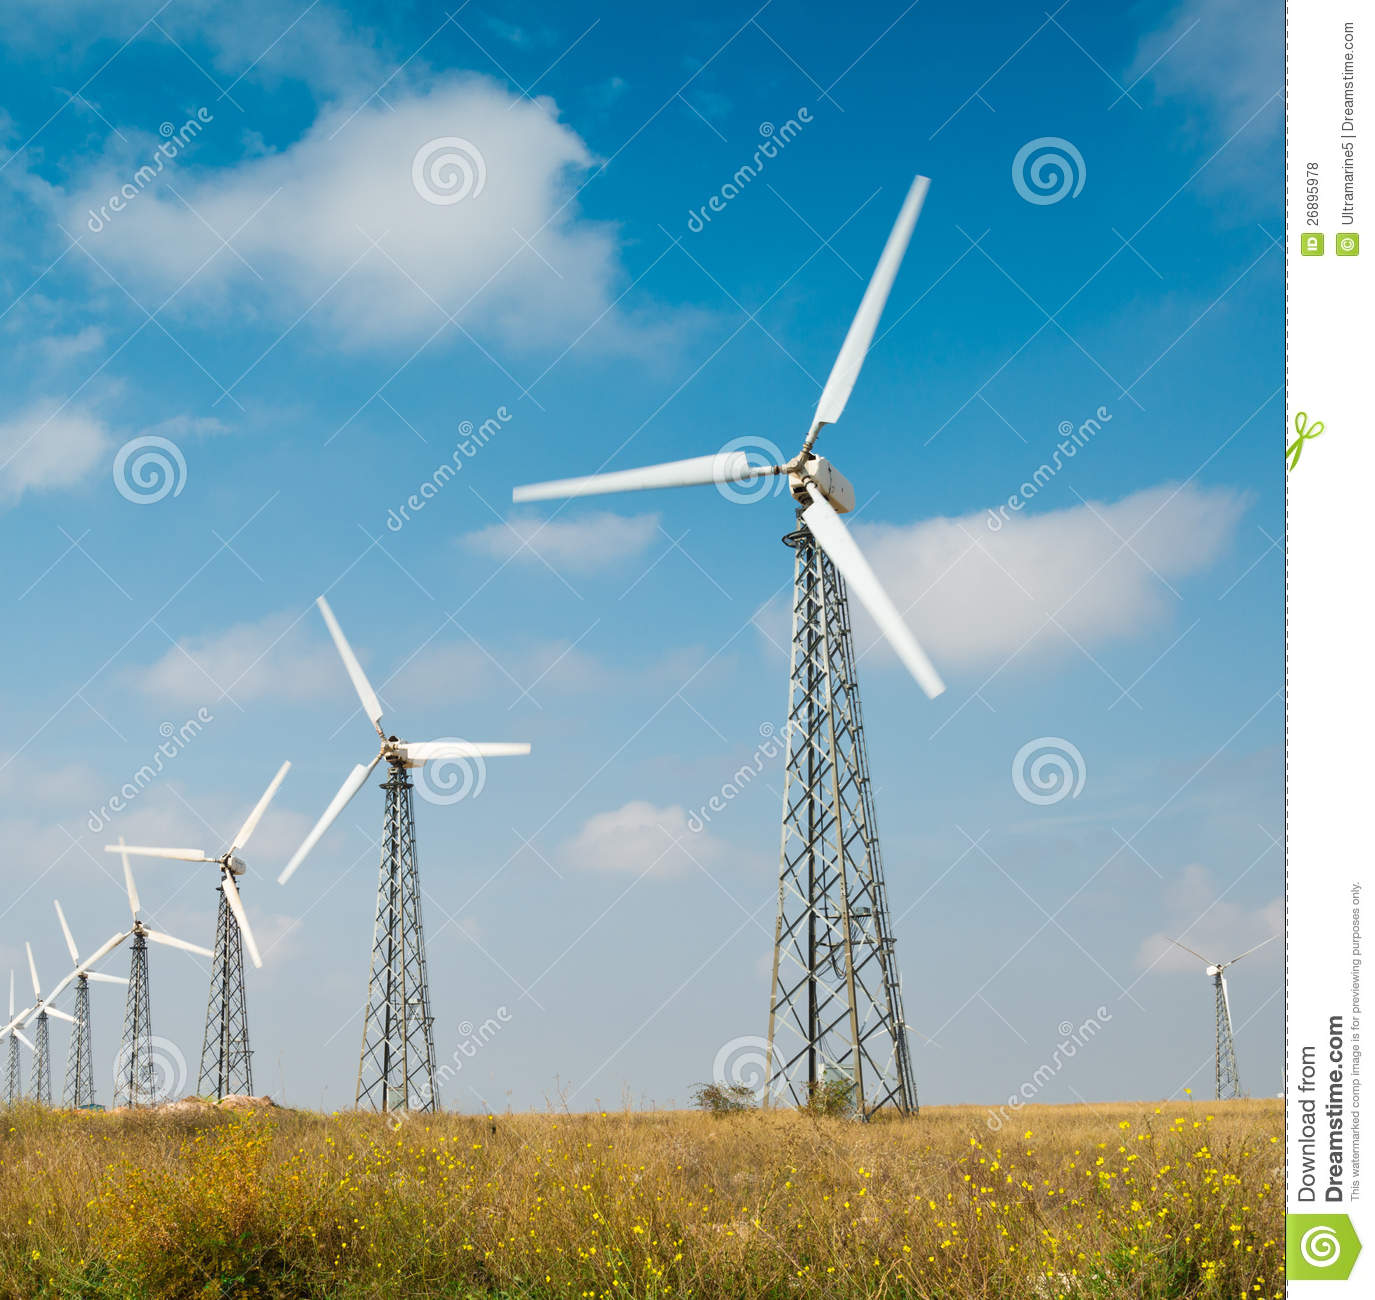 Alternative Energy Source Royalty Free Stock Photos - Image: 26895978